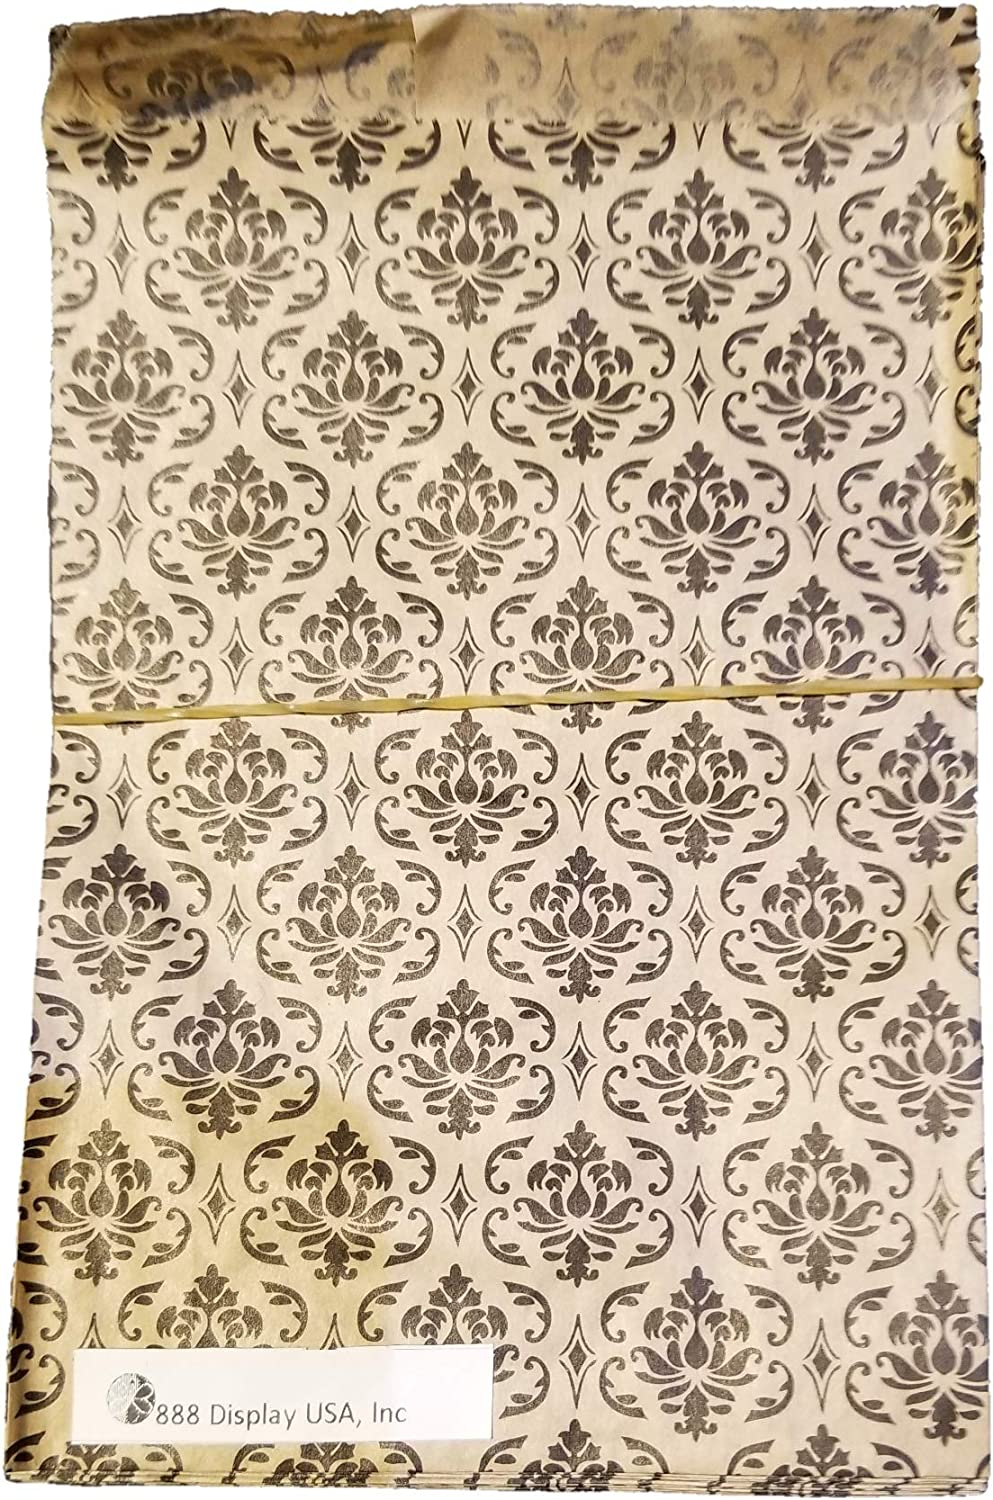 """200 pcs Damask Paper Gift Bags Shopping Sales Tote Bags Brown with Black Damask Design (8 1/2"""" x 11"""") …"""